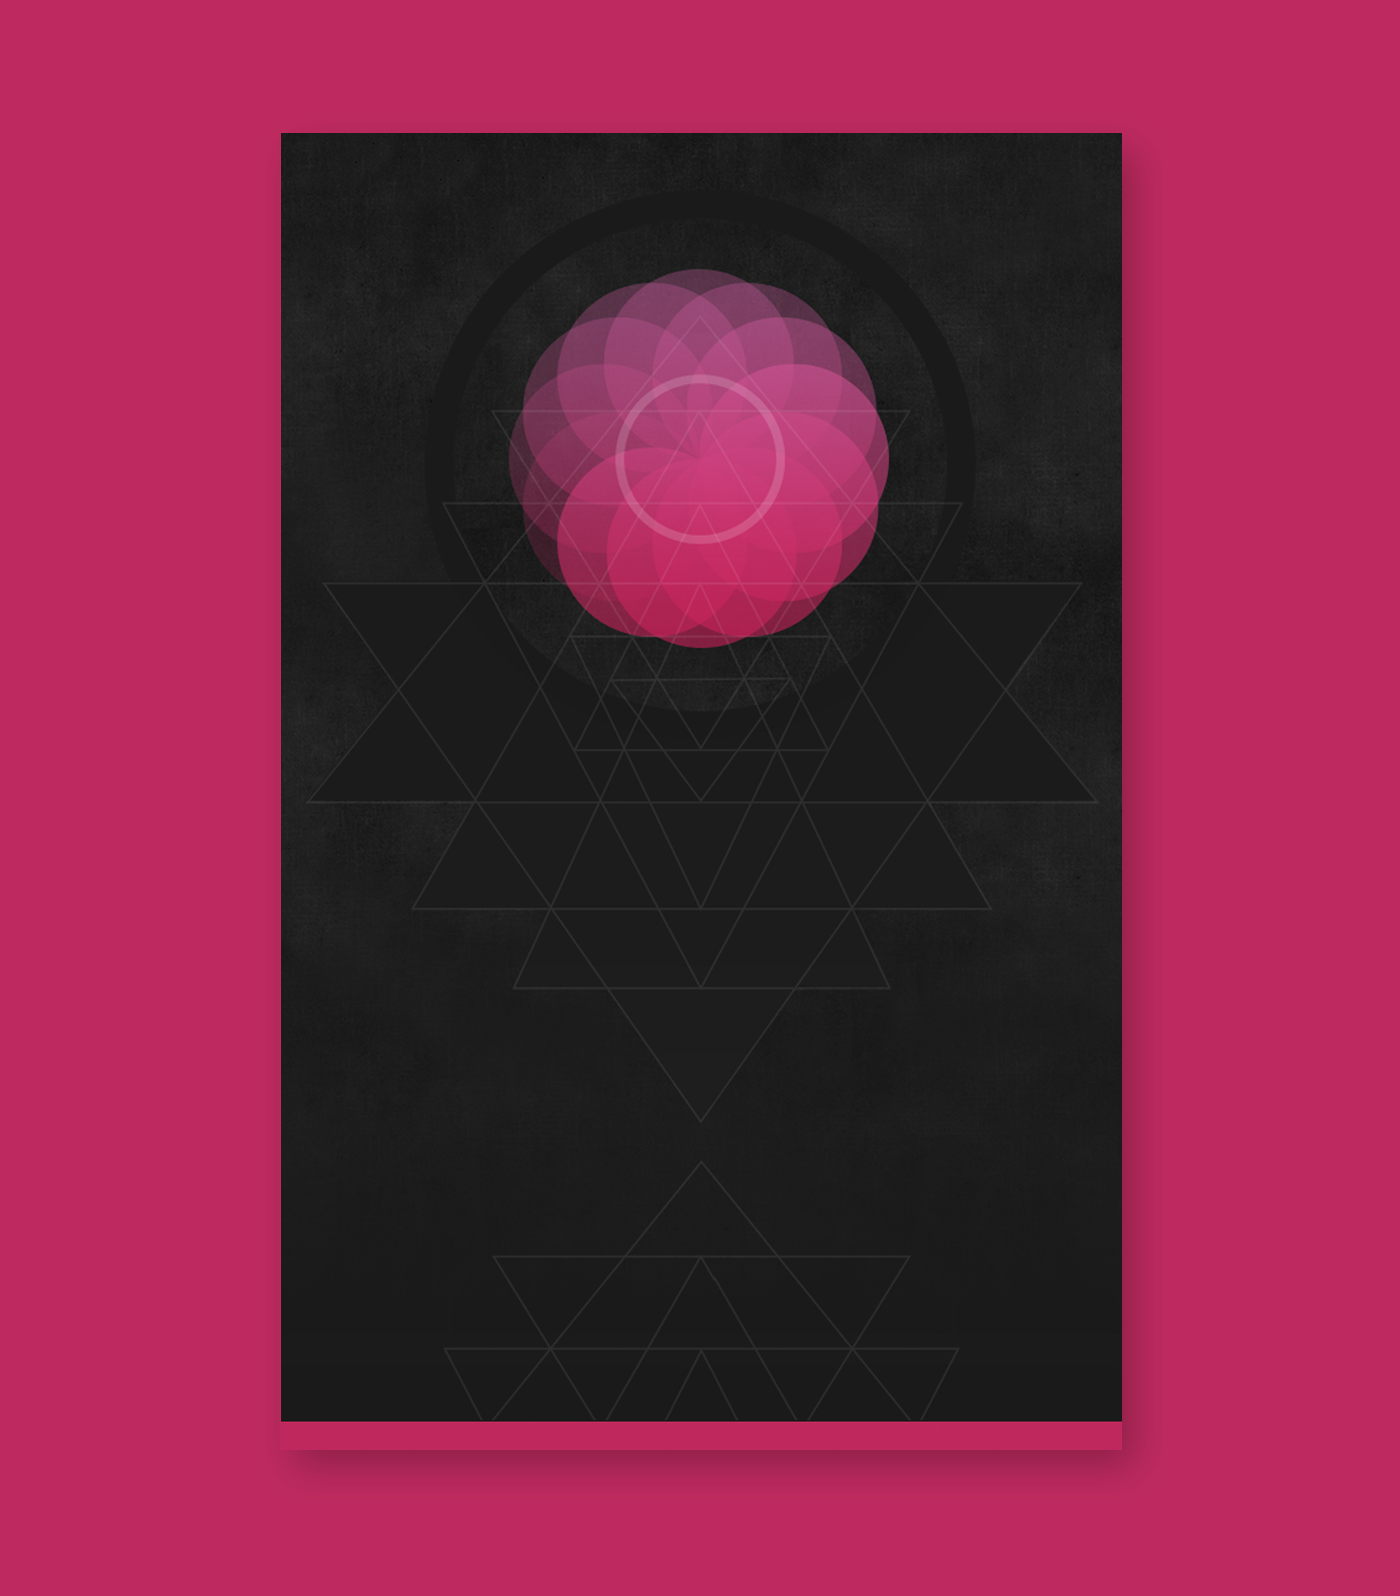 poster_poster02.png